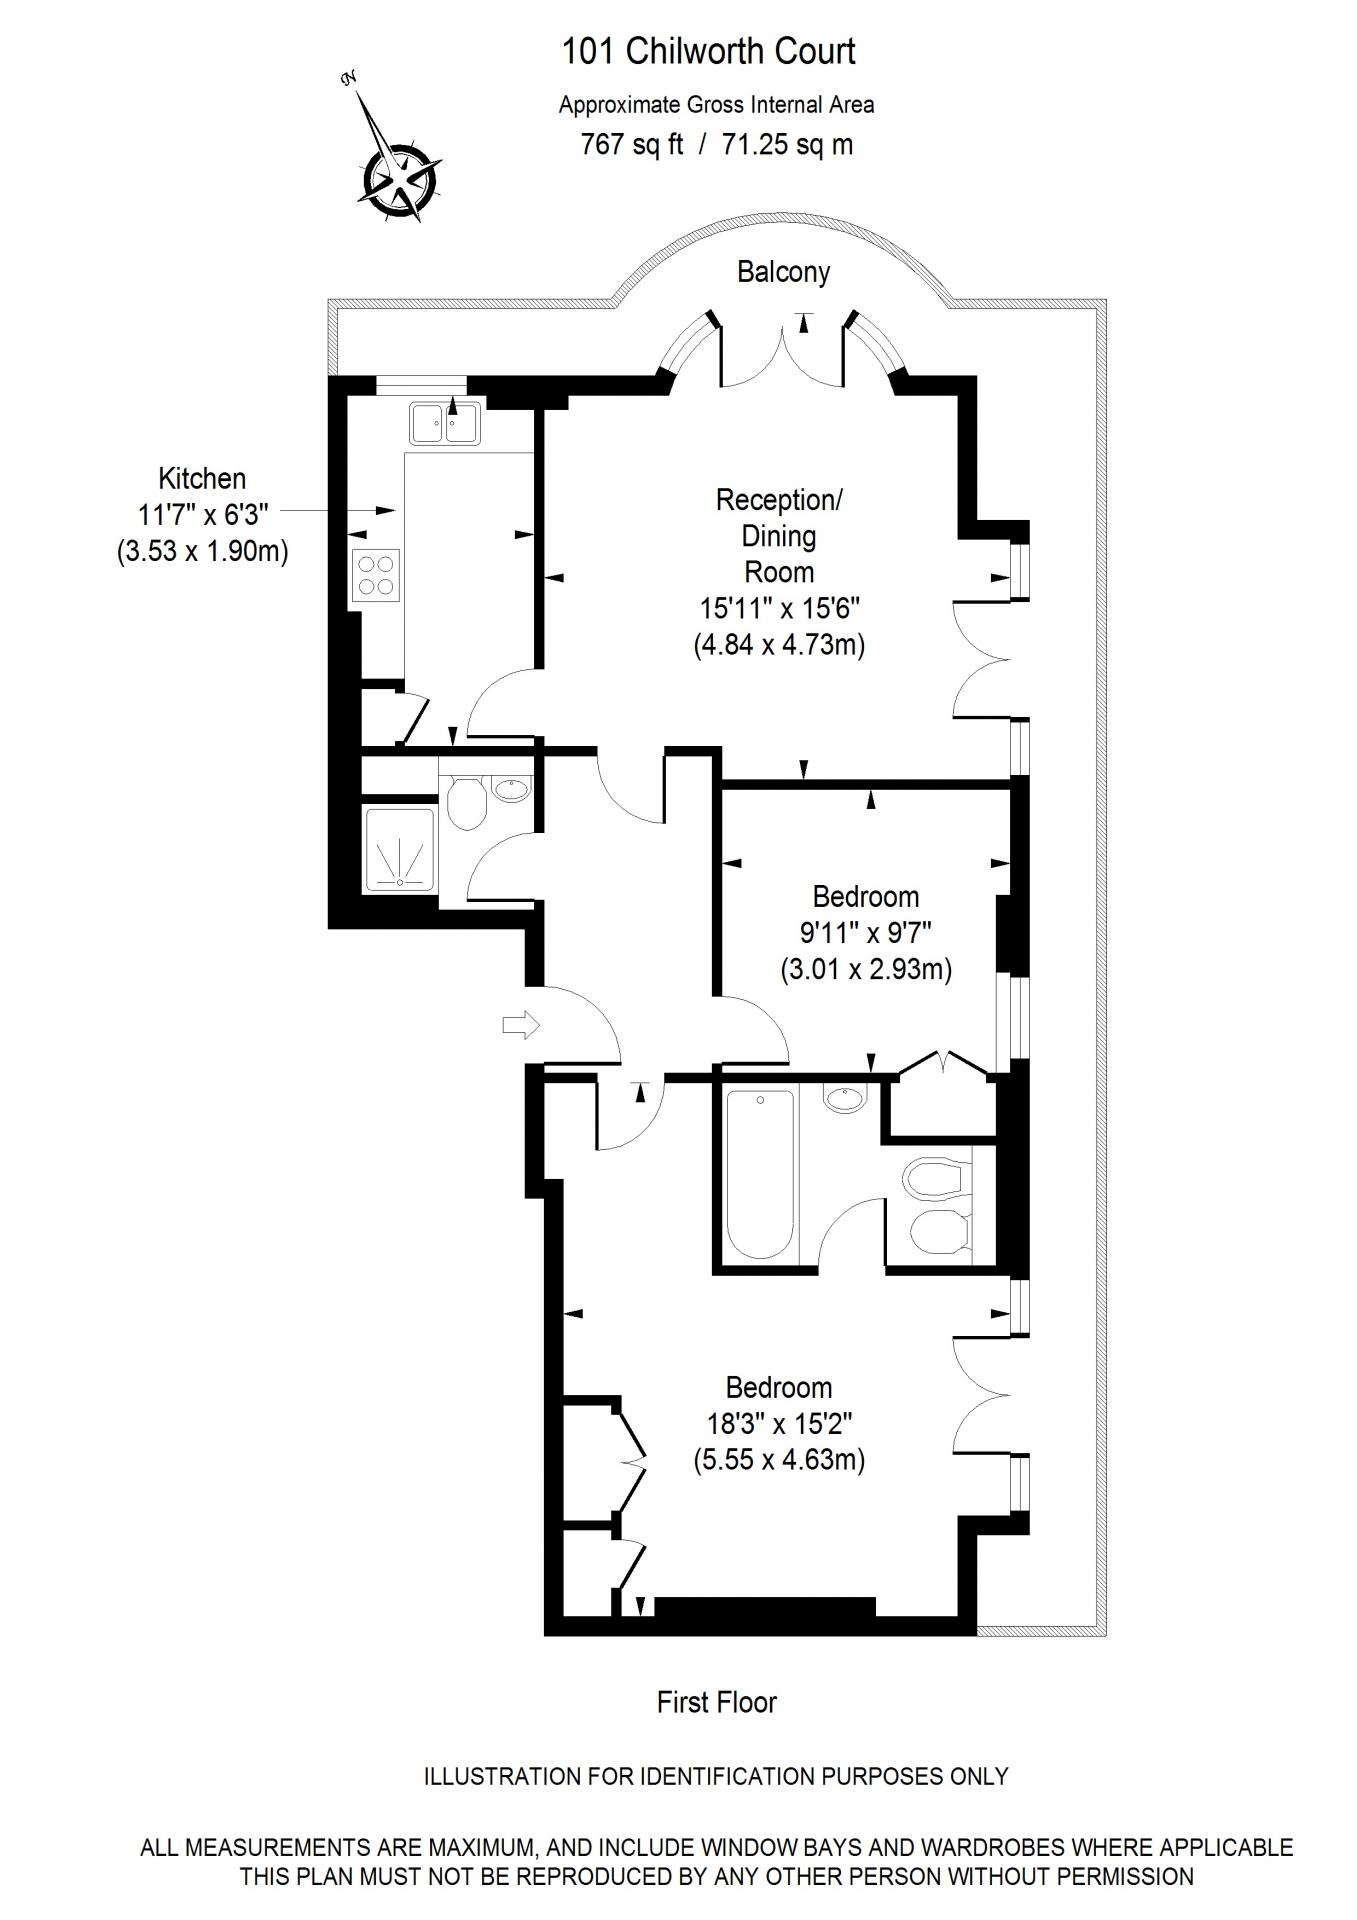 Deluxe two bed floor plan of Chilworth Court Serviced Apartments, Paddington, London